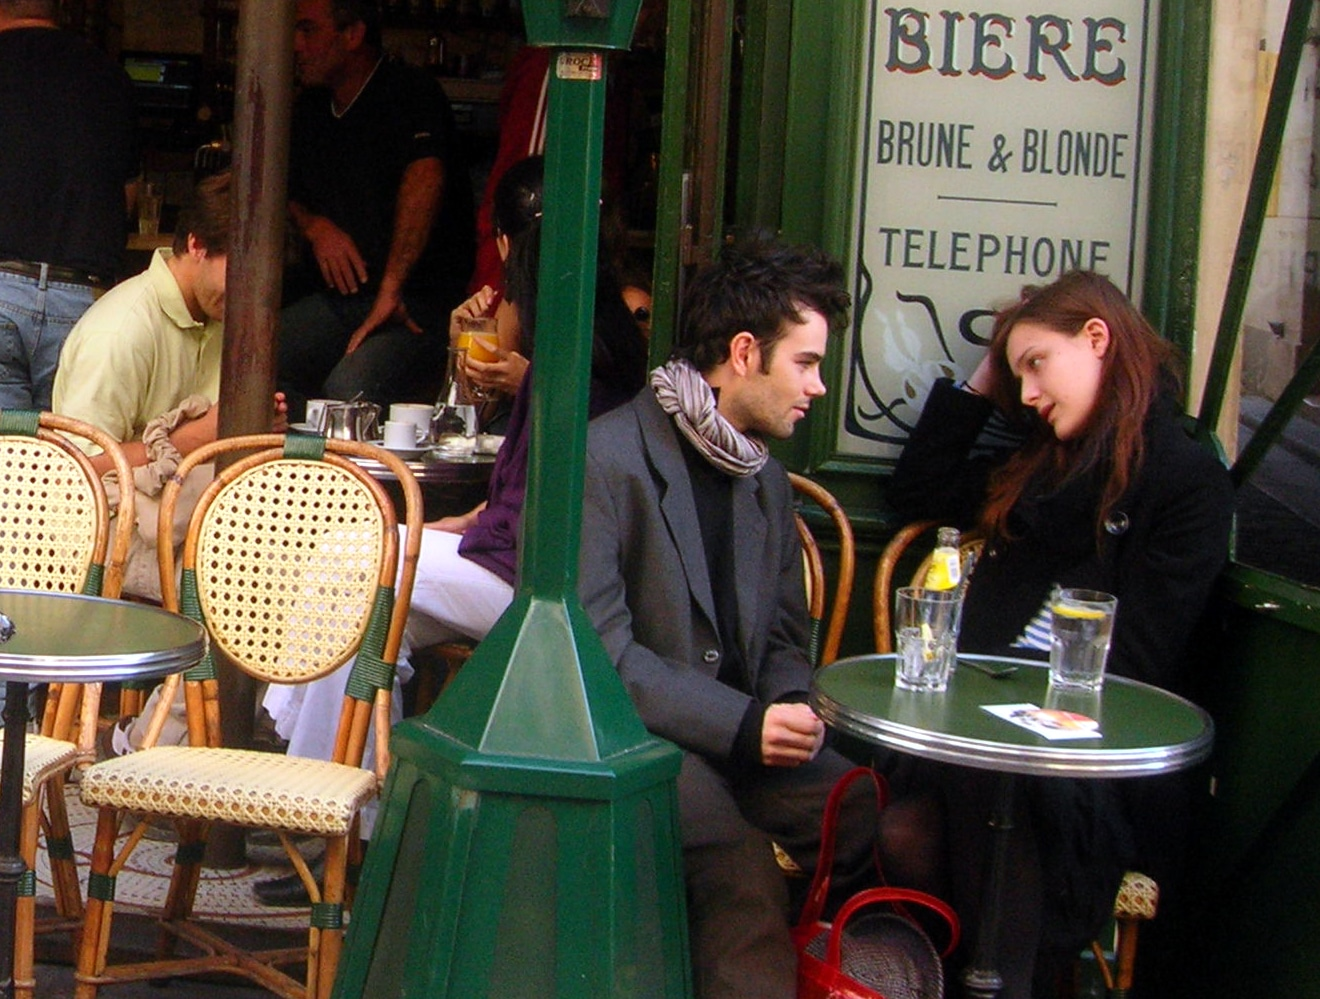 French Couple Speaking Language at Cafe